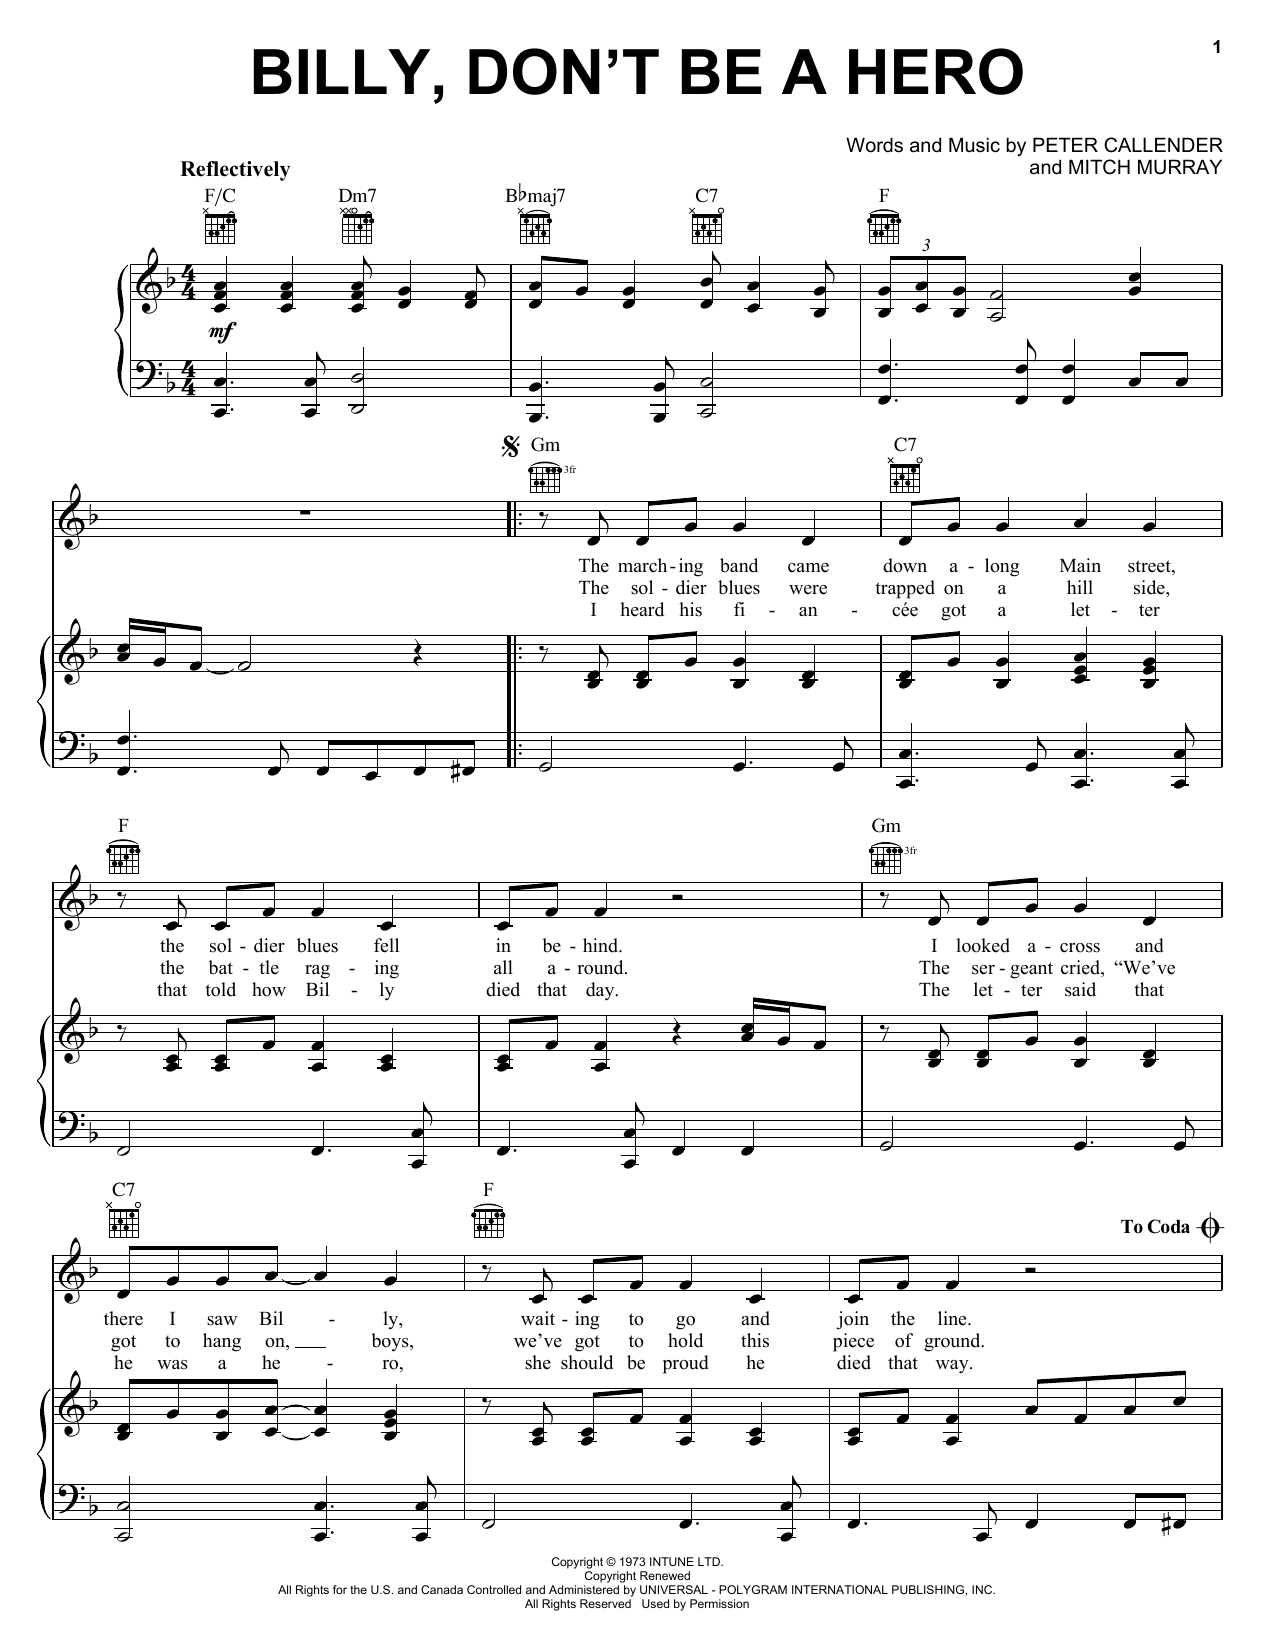 Bo Donaldson & The Heywoods Billy, Don't Be A Hero sheet music notes and chords. Download Printable PDF.